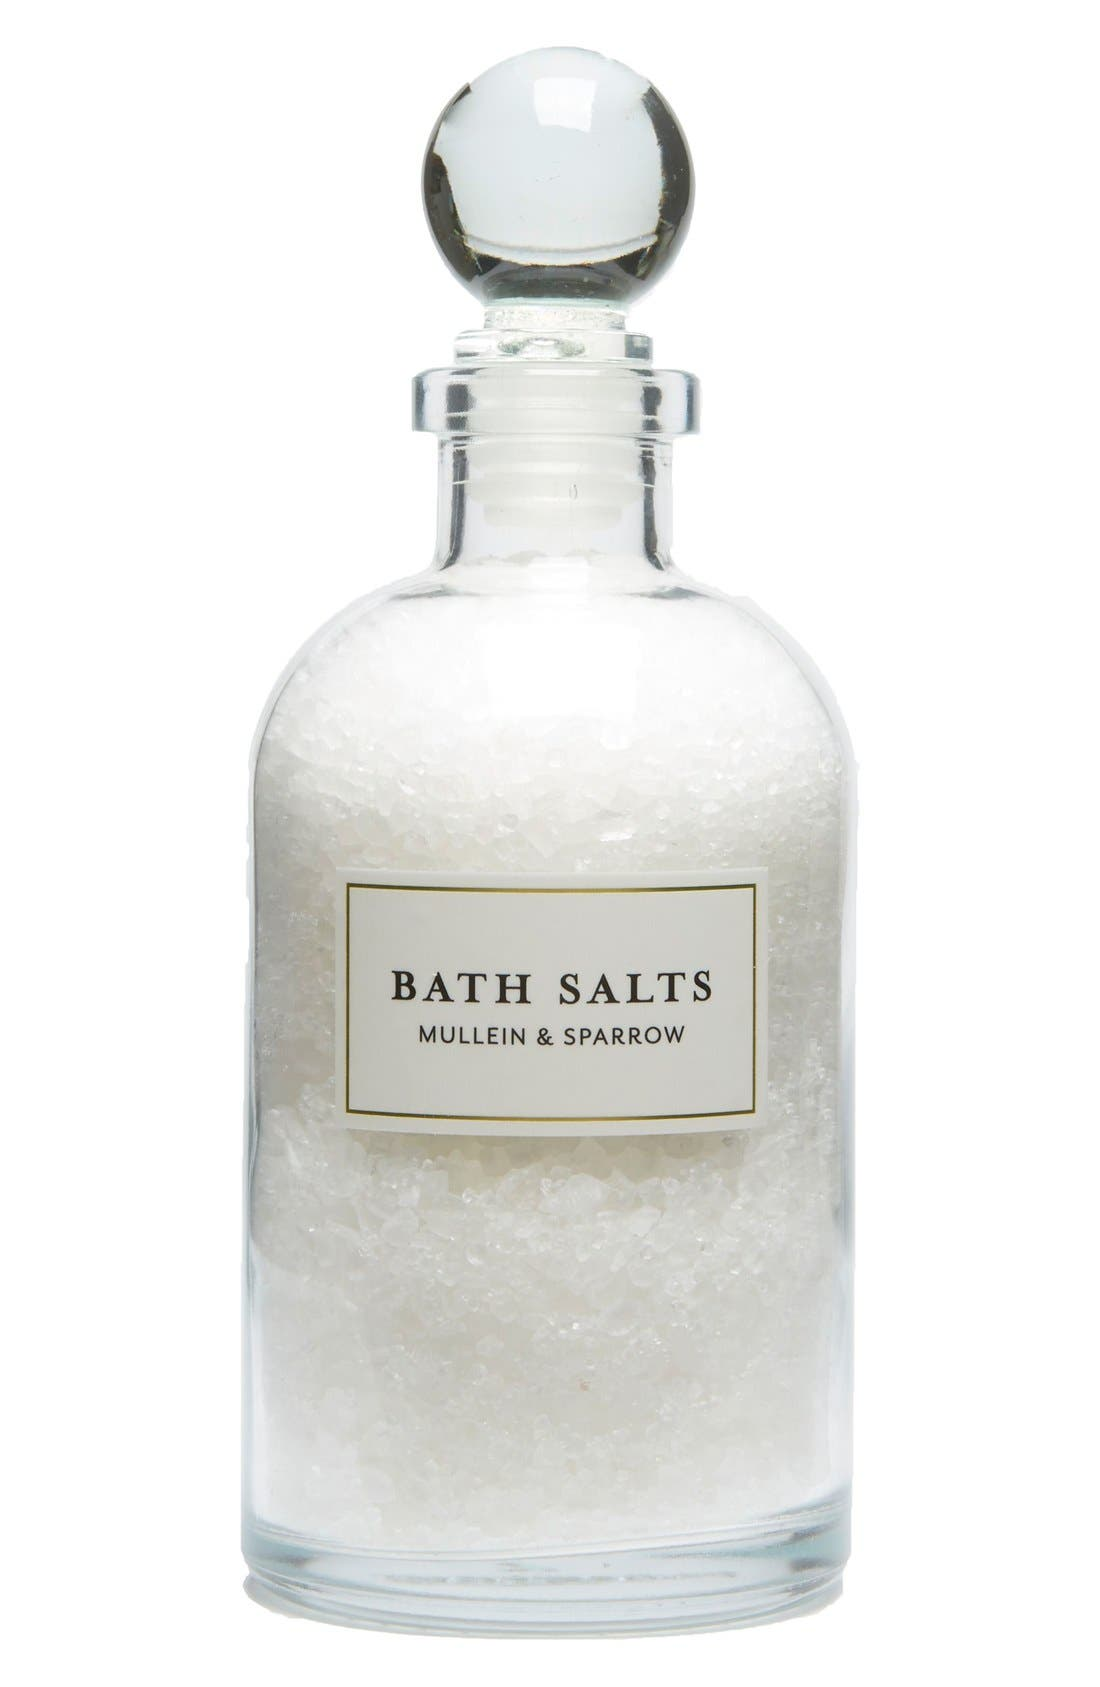 Mullein & Sparrow Mini Bath Salts